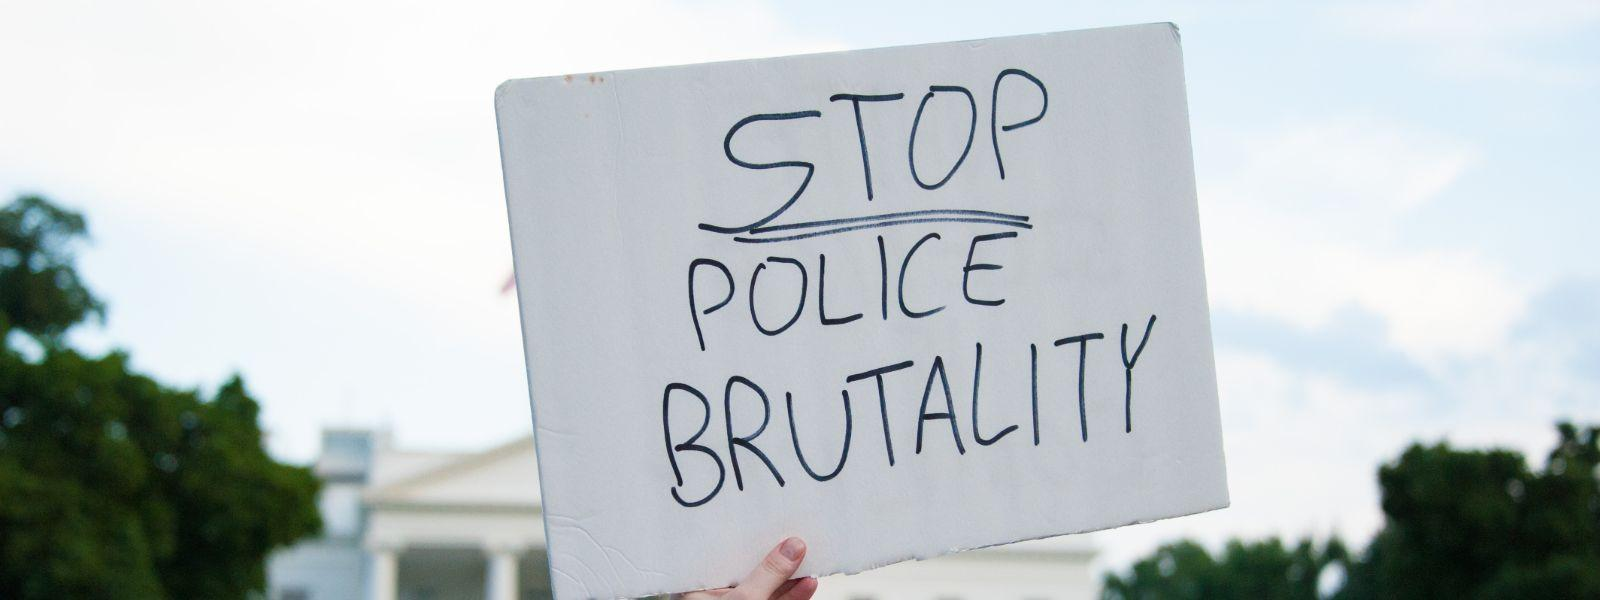 Cochran Texas | Police Brutality - Civil Rights Attorneys in Texas - The Cochran Firm - Texas Personal Injury & Criminal Defense Lawyers